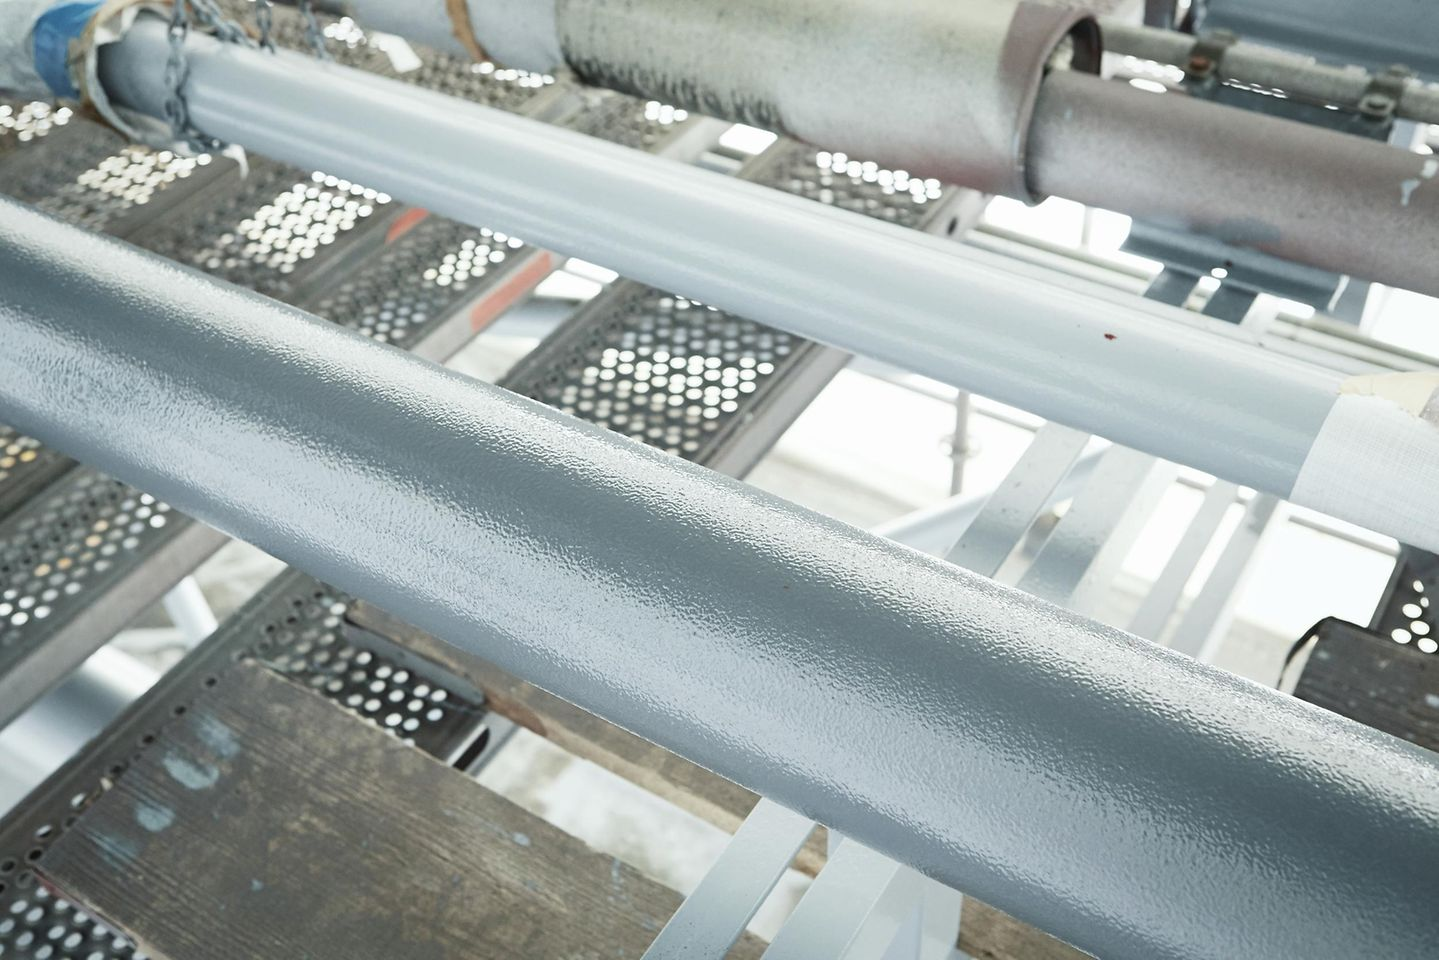 A steel pipe after coating with Loctite PC 7255 sprayable ceramic topcoat